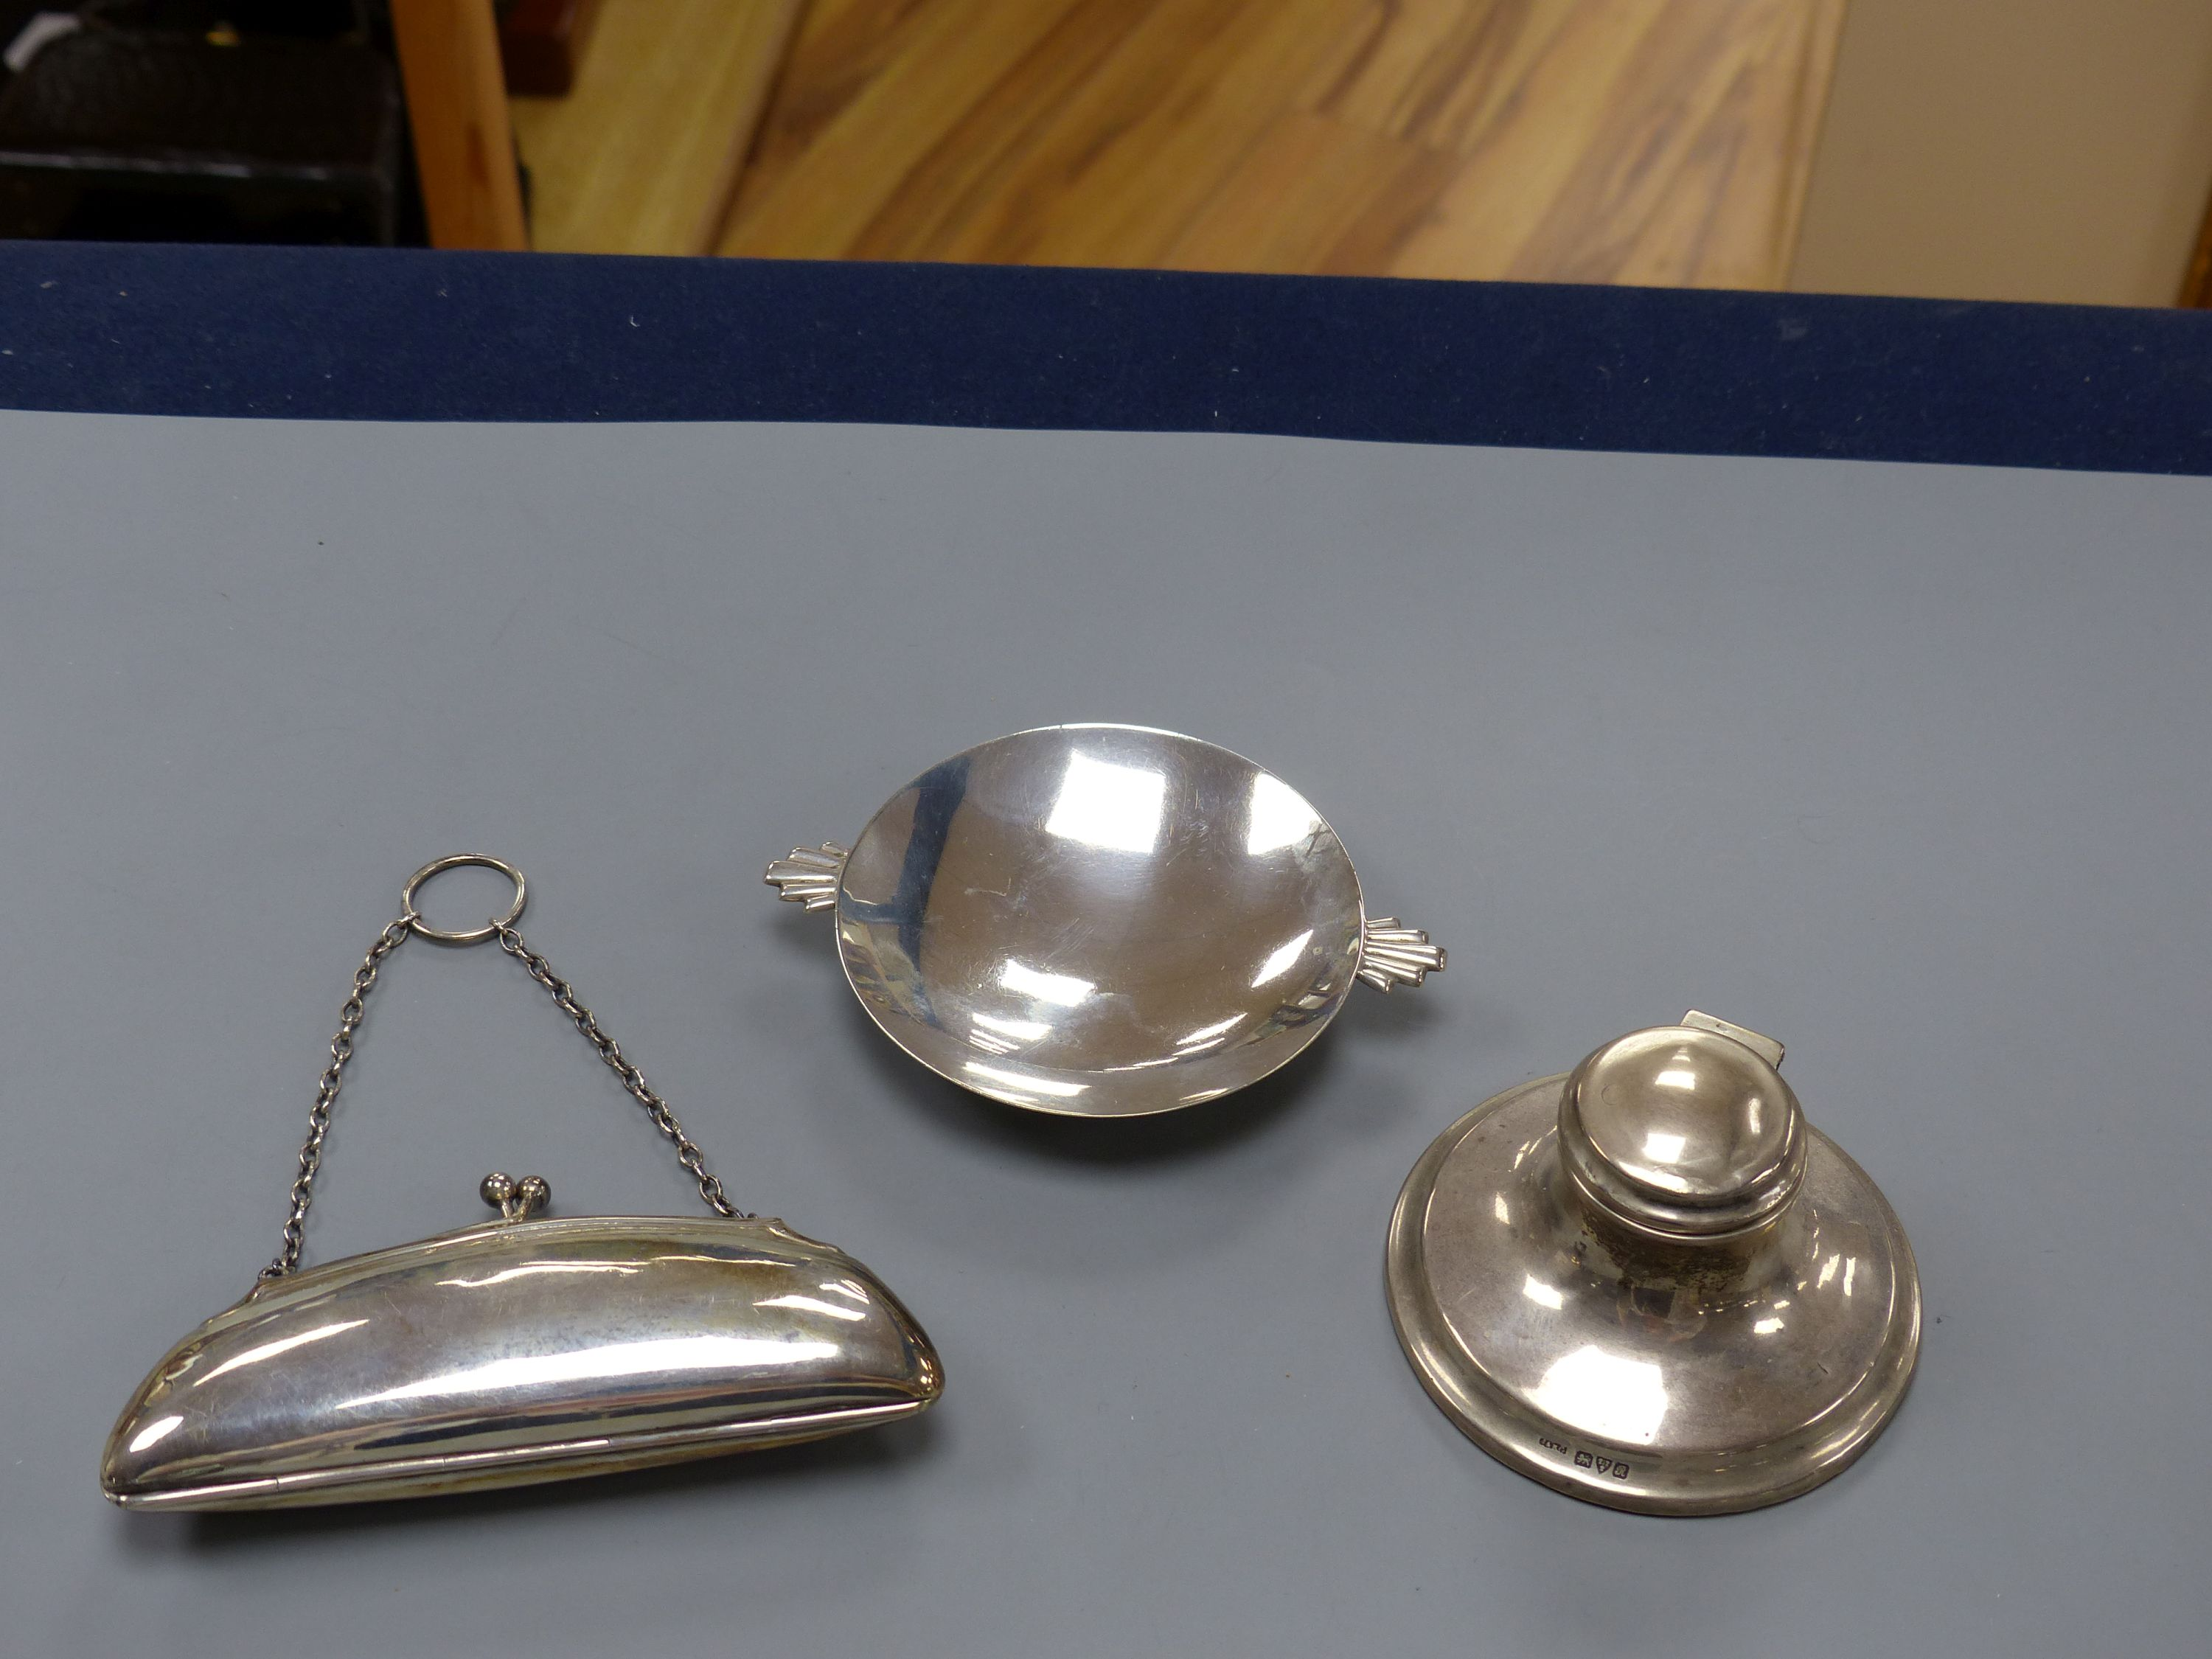 An Art Deco silver nut dish with fan shaped handles, Birmingham, 1934, 11.5cm, a silver purse and a - Image 2 of 3